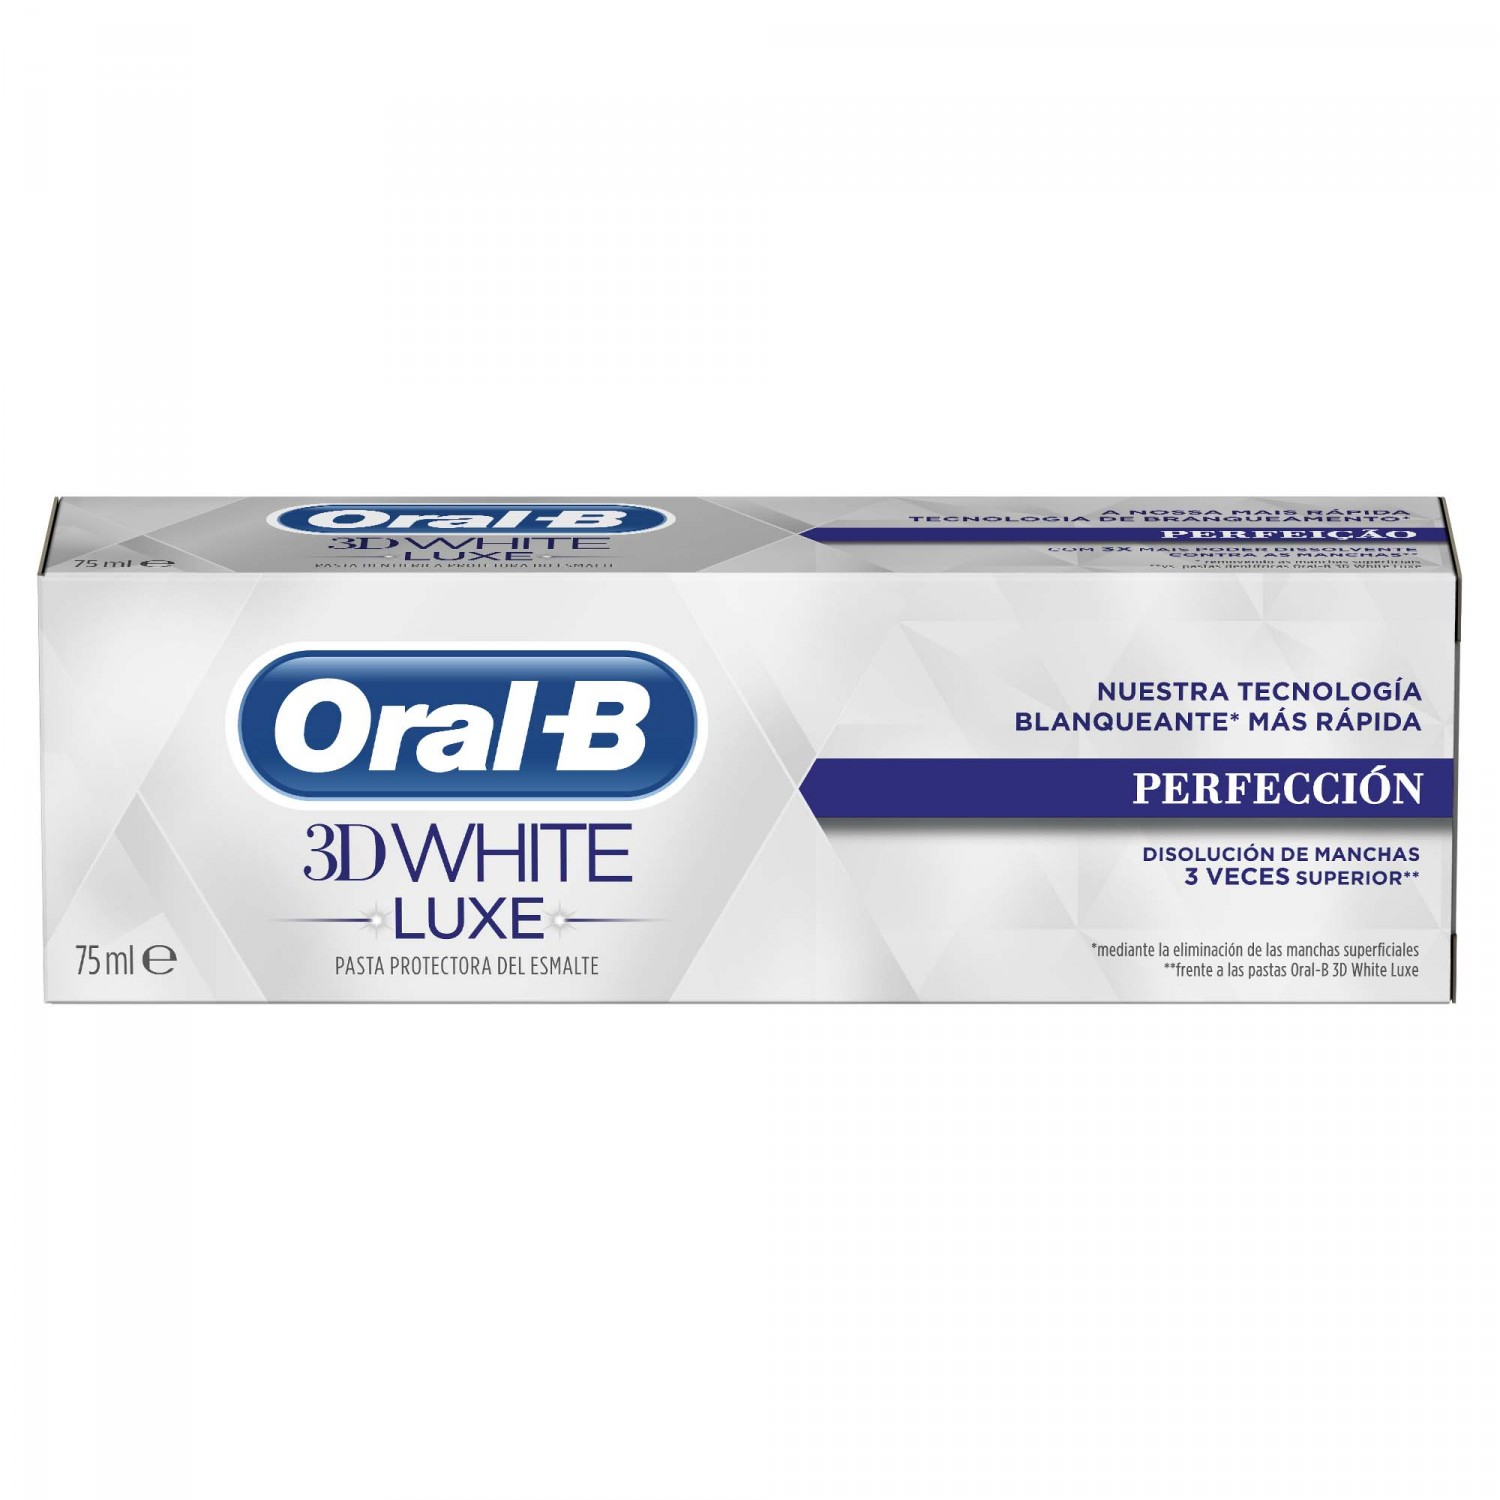 Oral B 3d white luxe pasta dientes perfeccion tubo tubo de 75ml.